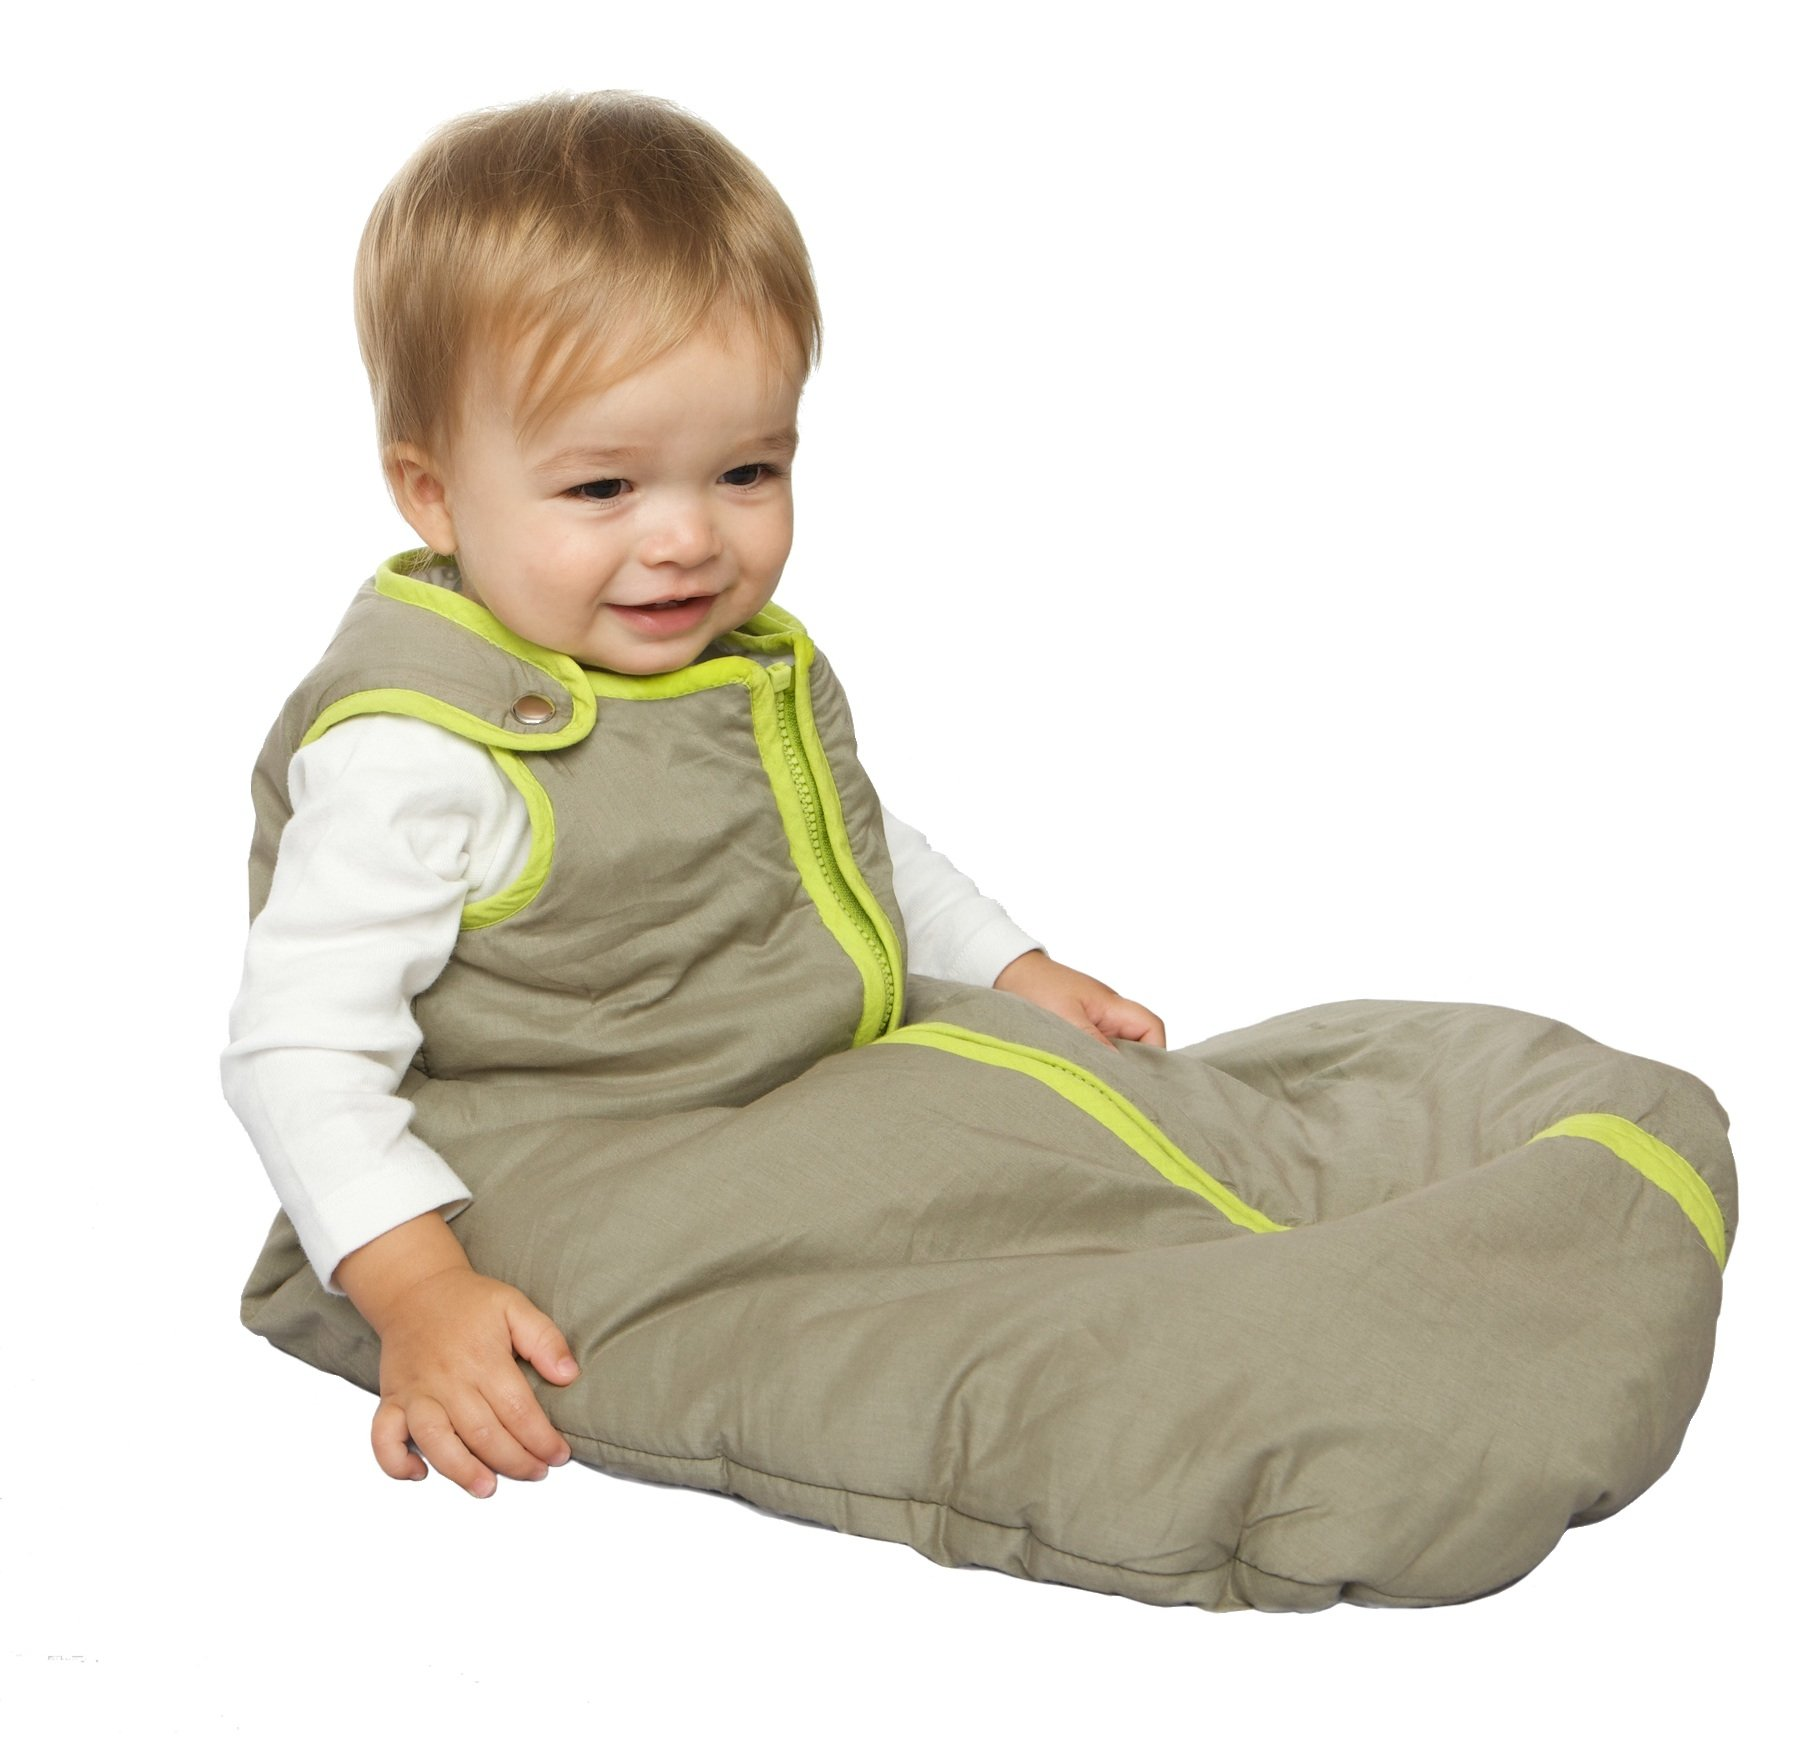 Baby Deedee Sleep Nest Baby Sleeping Bag, Khaki/Lime Green, Medium (6-18 Months)